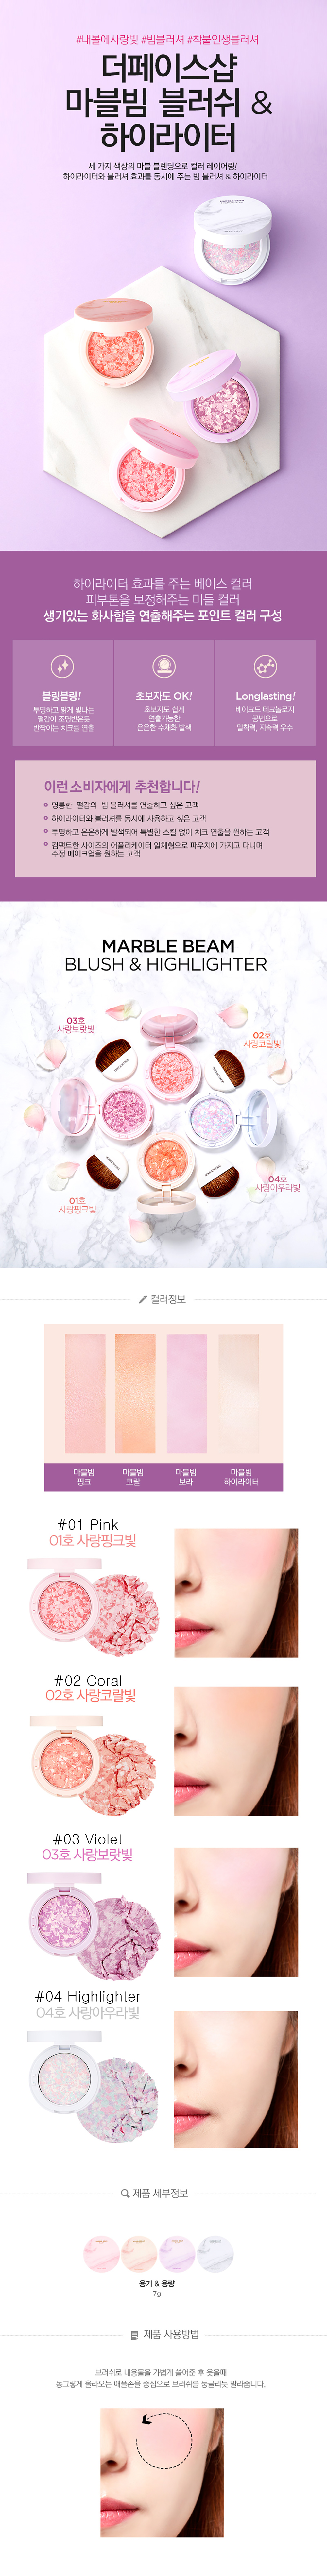 [THE FACE SHOP] Marble Beam Blush & Highlighter 7g